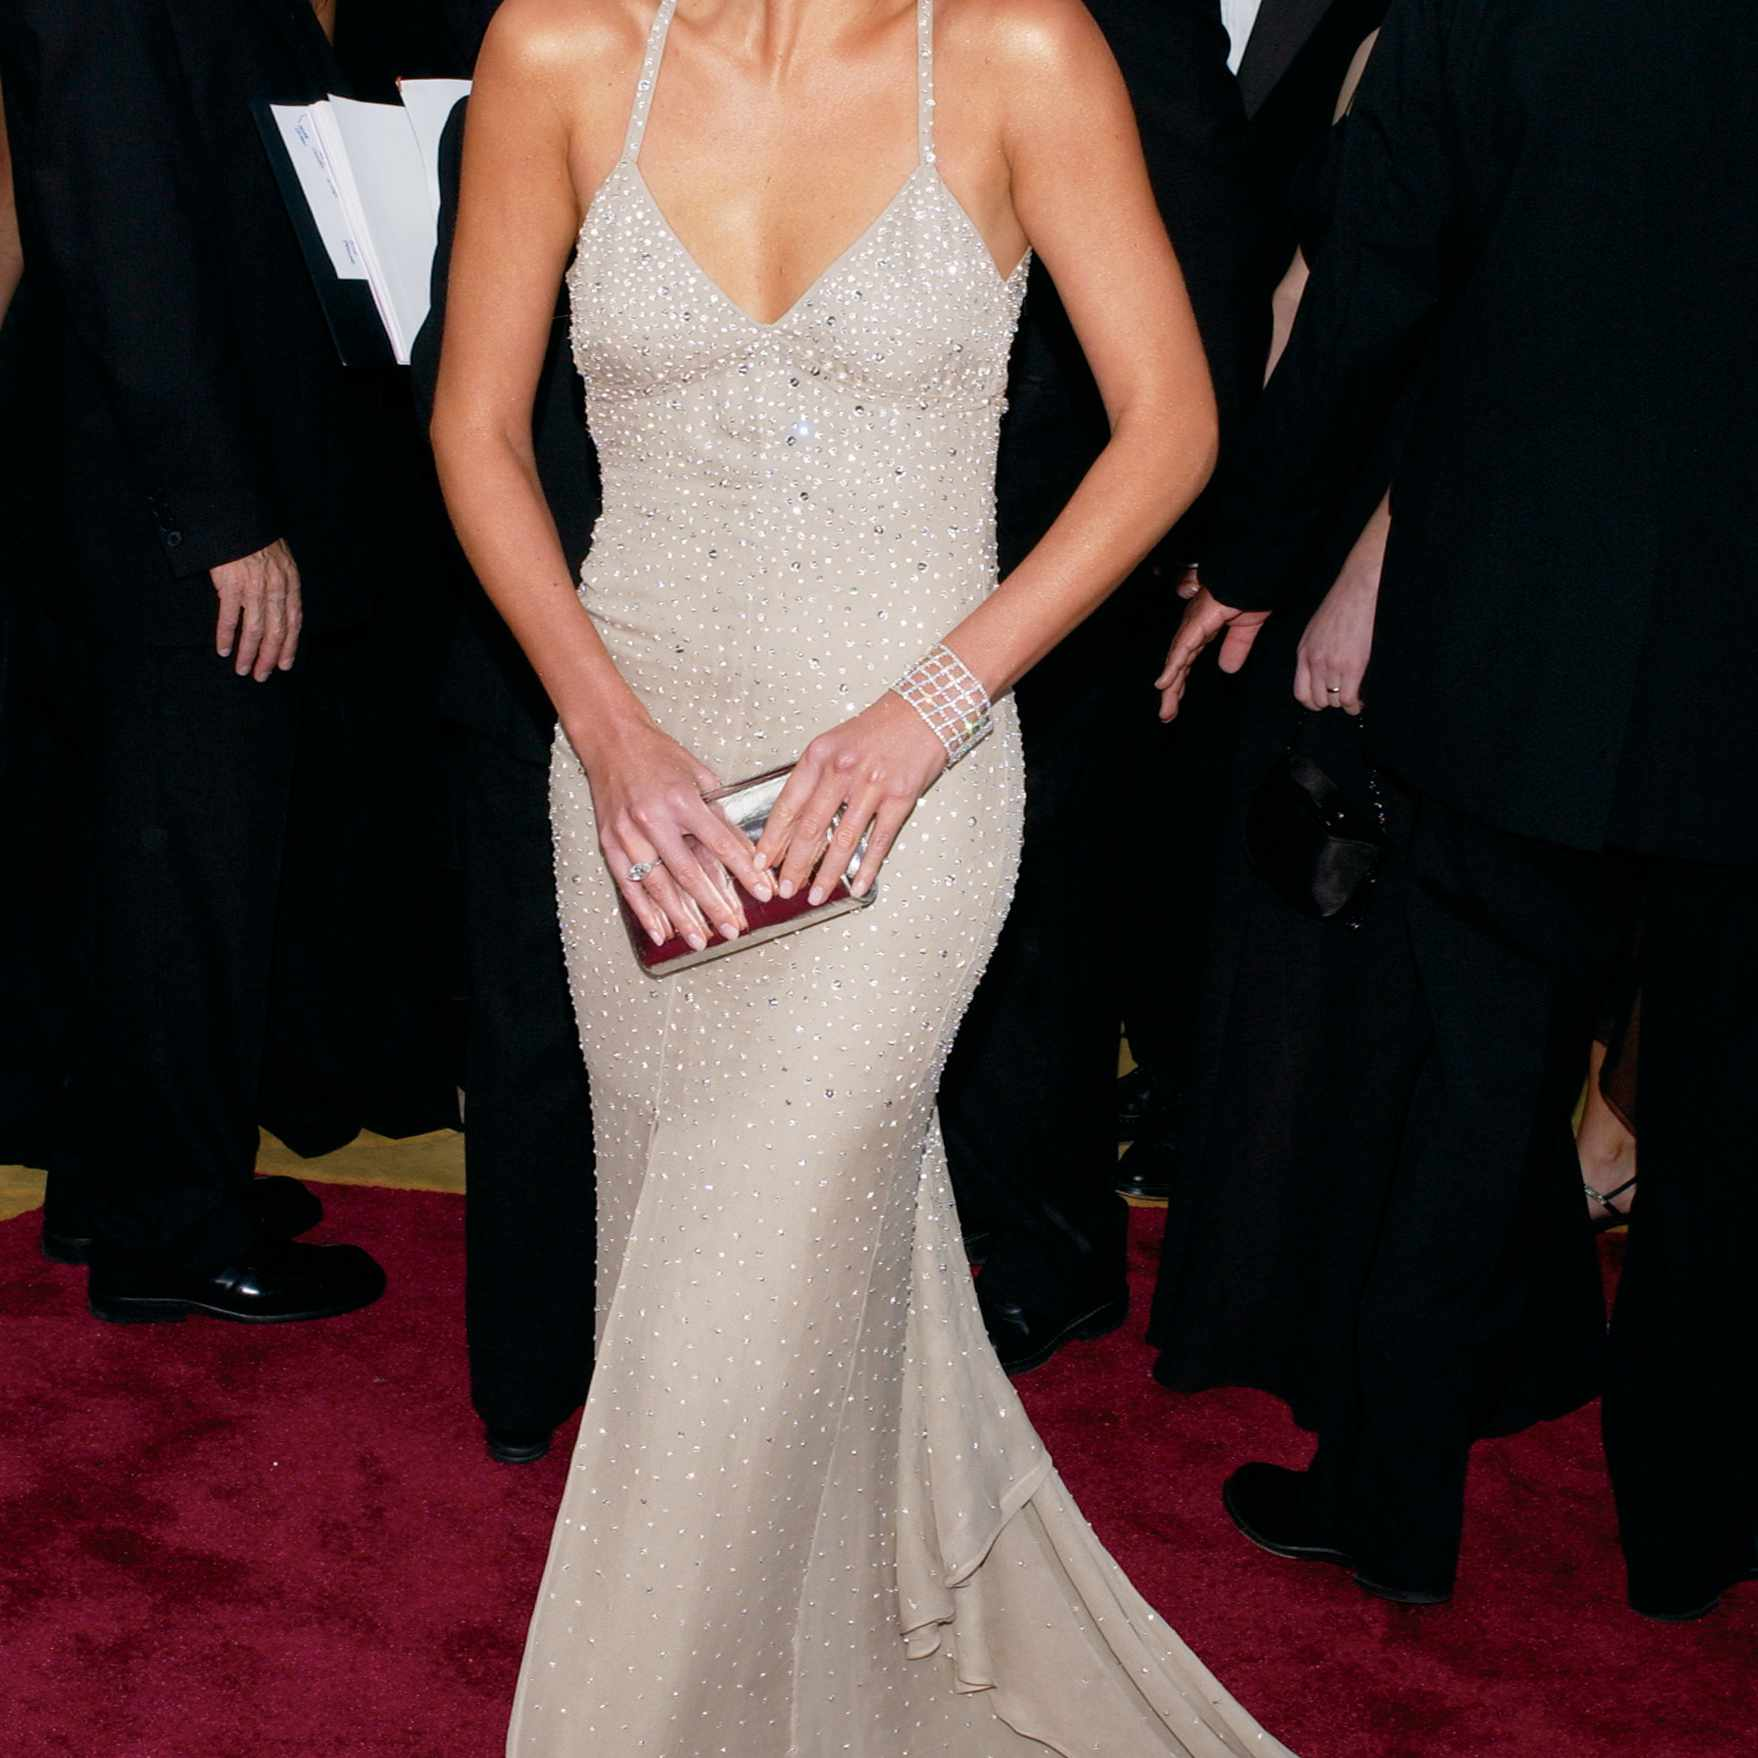 The Most Bridal Oscar Red Carpet Dresses of All Time